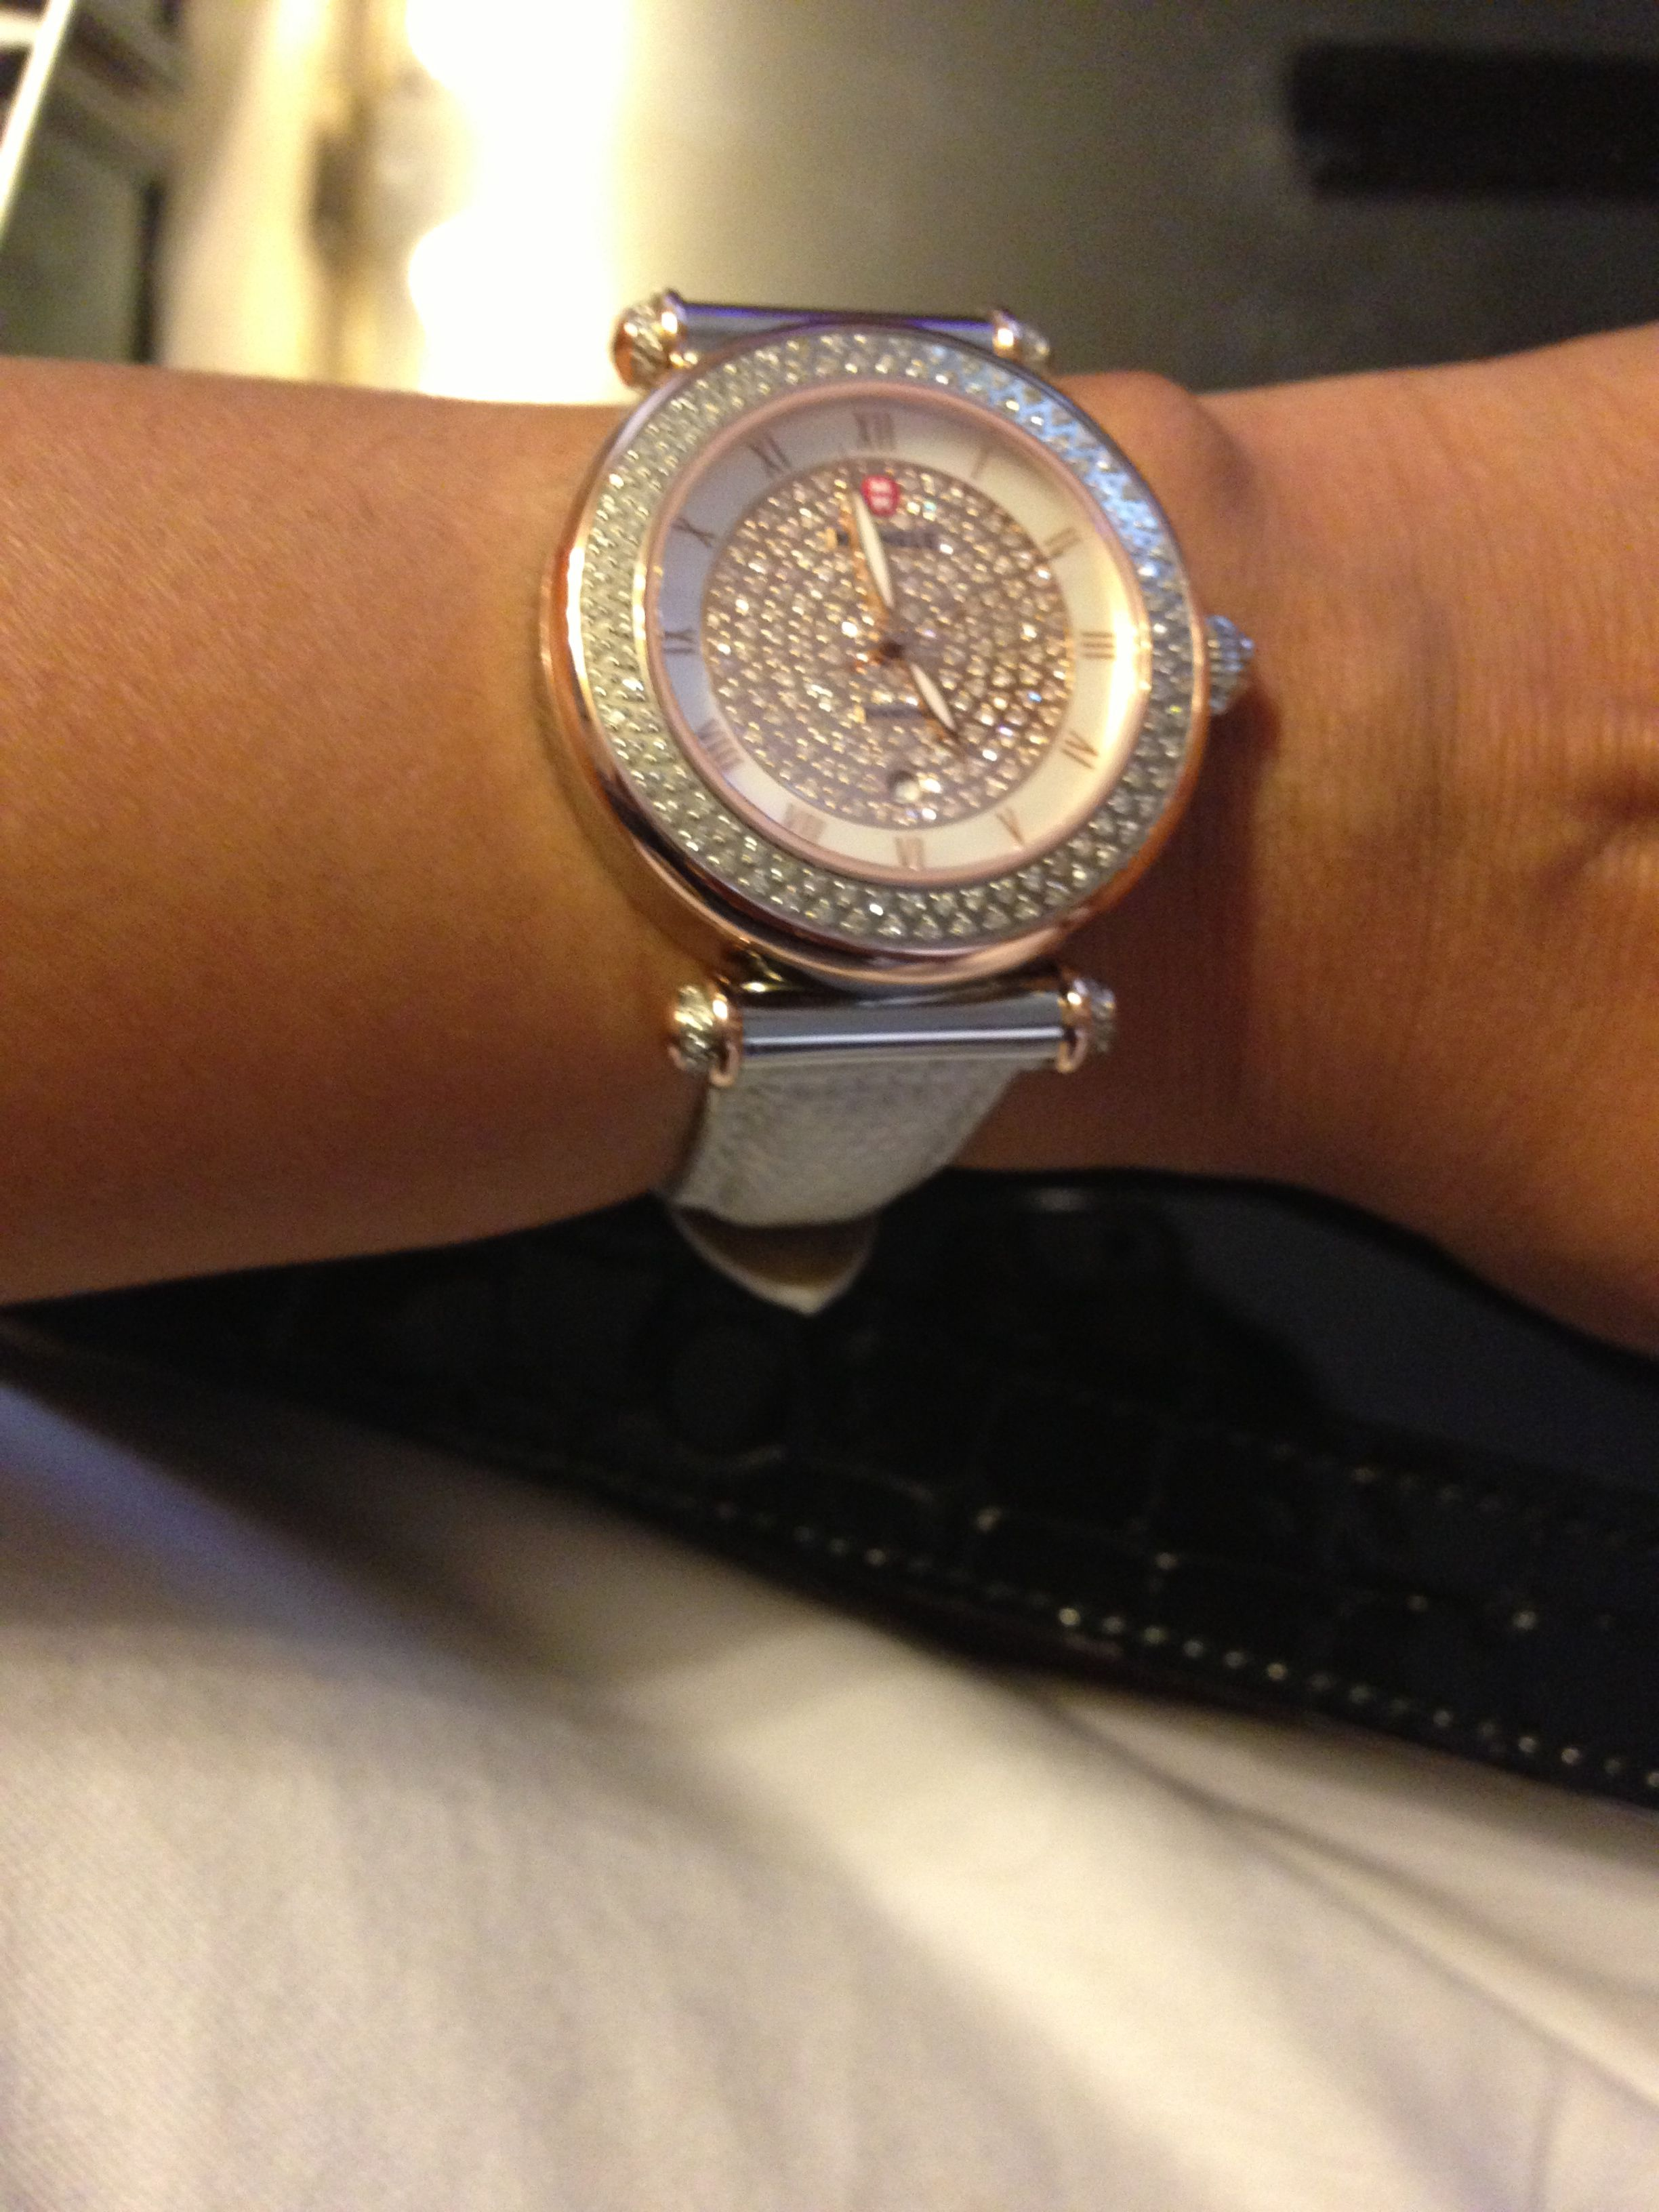 Two toned rose gold/ silver Michele round faced diamond watch...trunk show piece